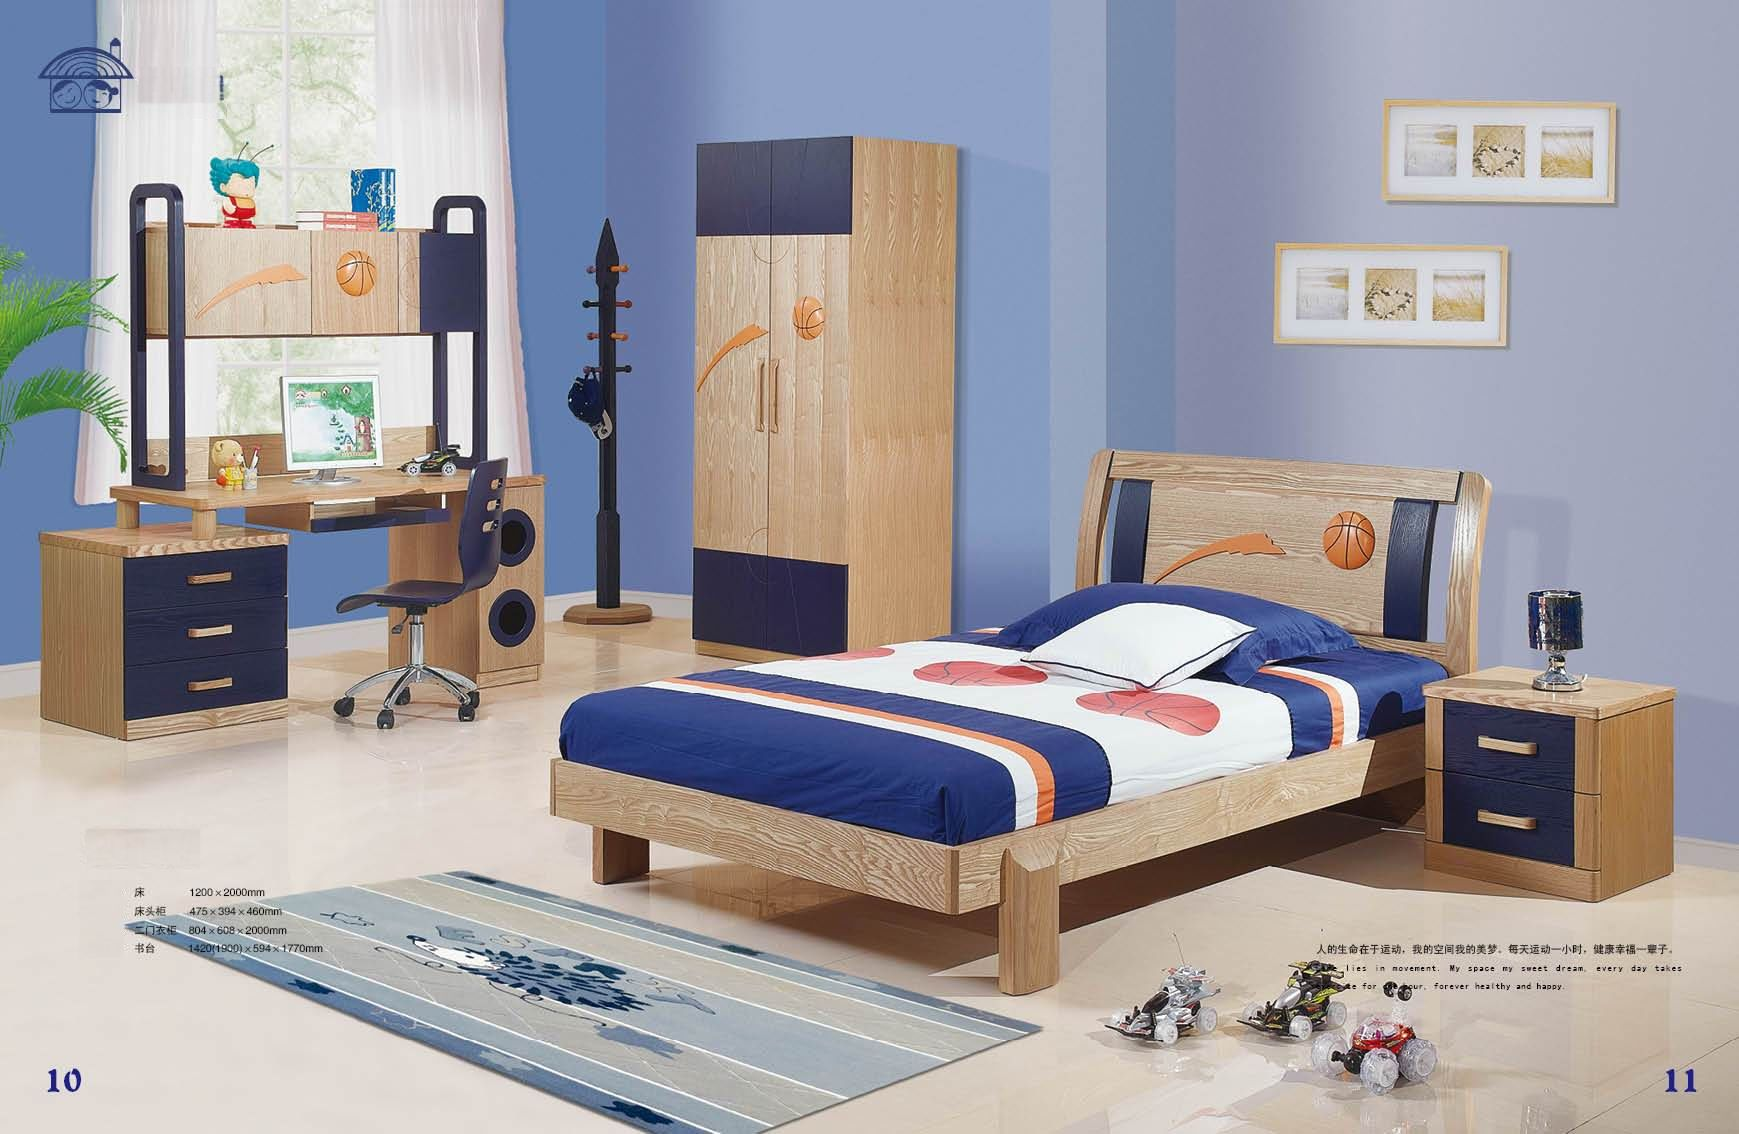 Youth Bedroom Furniture   Kids Bedroom Set  JKD 20120    China   Youth Bedroom Furniture   Kids Bedroom Set  JKD 20120    China Kids. Boys Bedroom Furniture Sets. Home Design Ideas